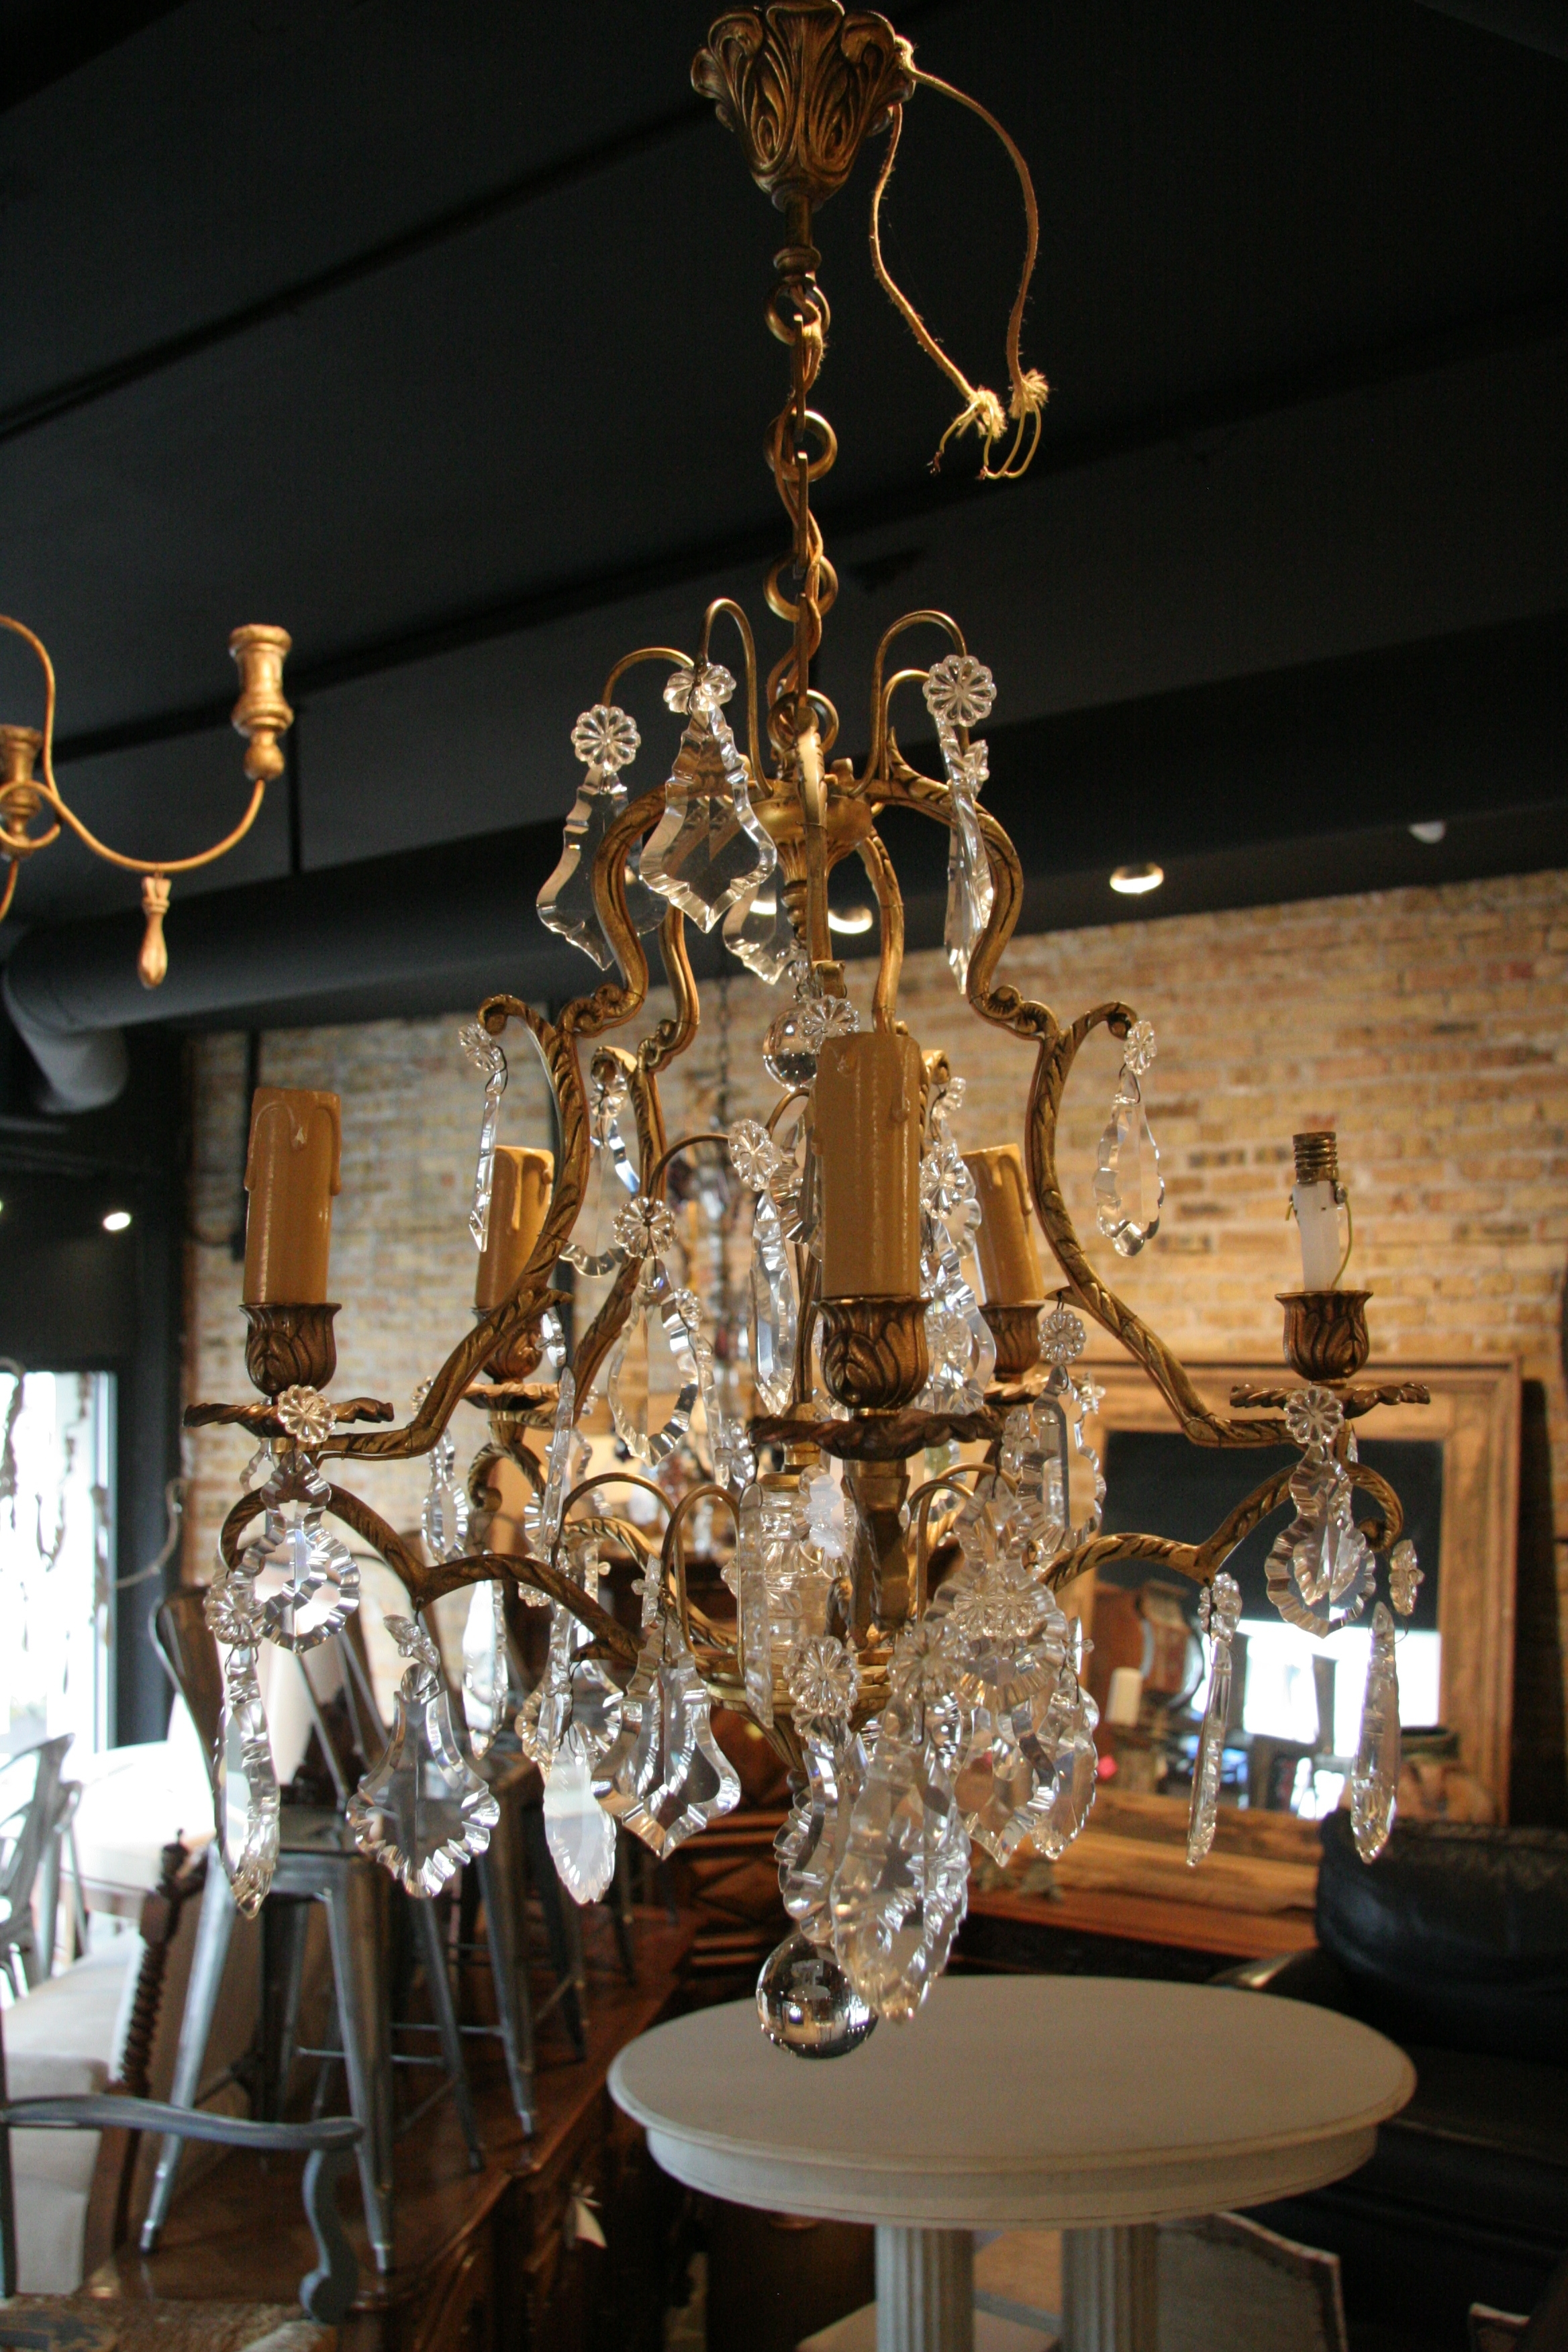 Widely Used Antique French 5 Light Brass And Crystal Chandelier – Sold – Within Antique French Chandeliers (View 5 of 15)